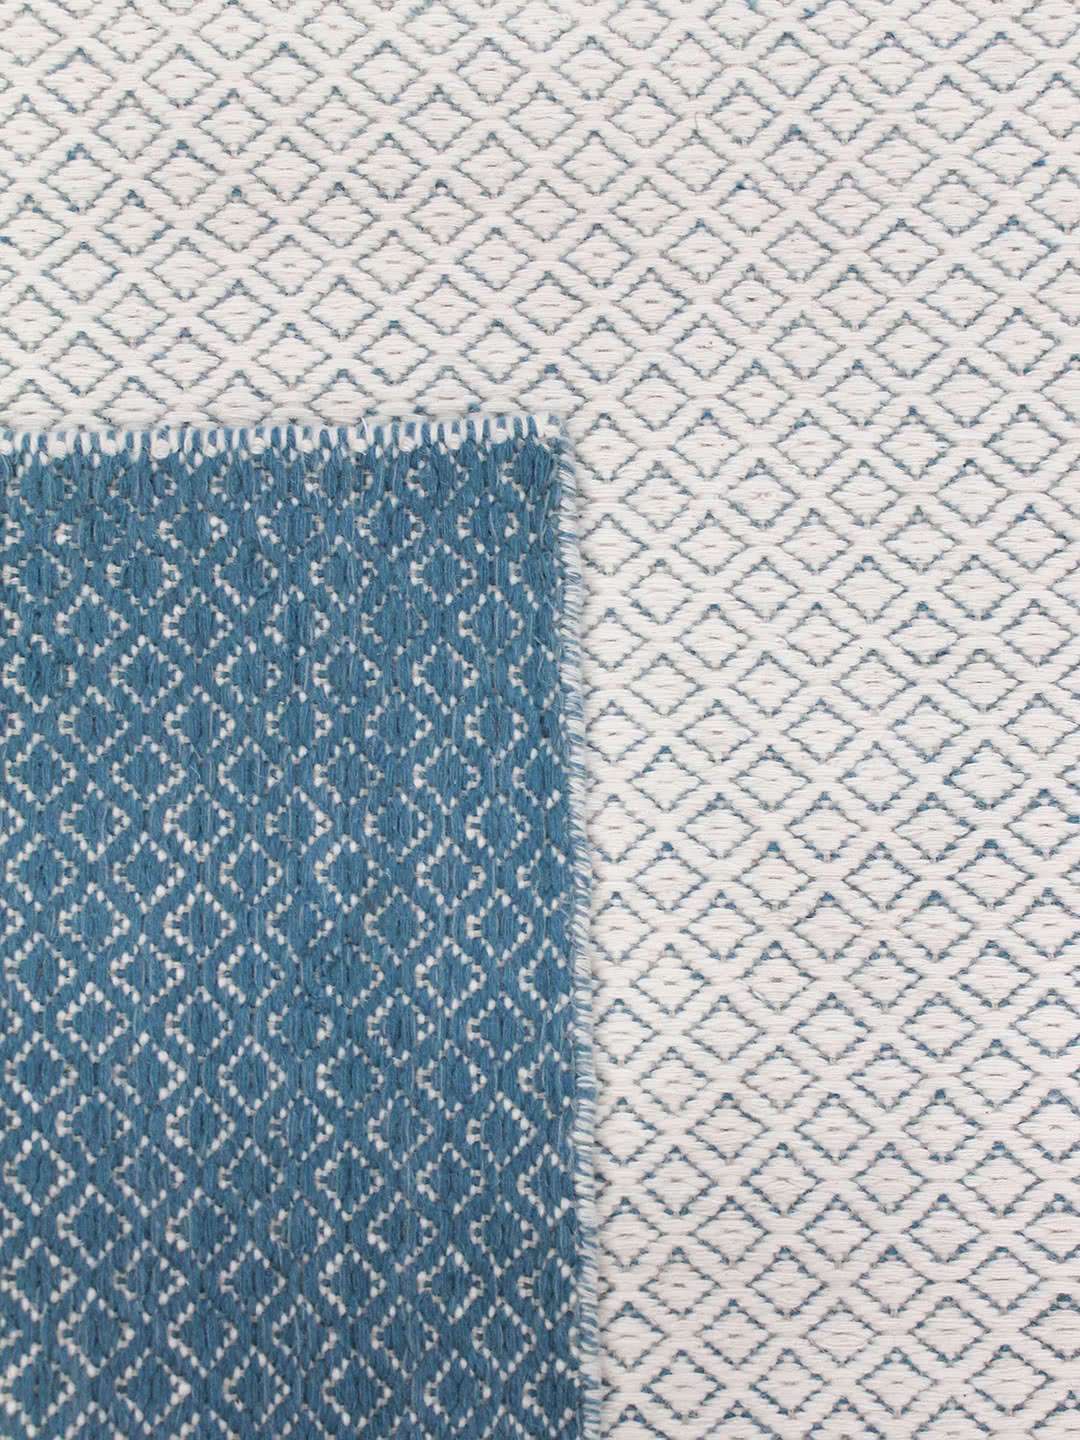 Ivory Blue reverse pure wool rugs Perth